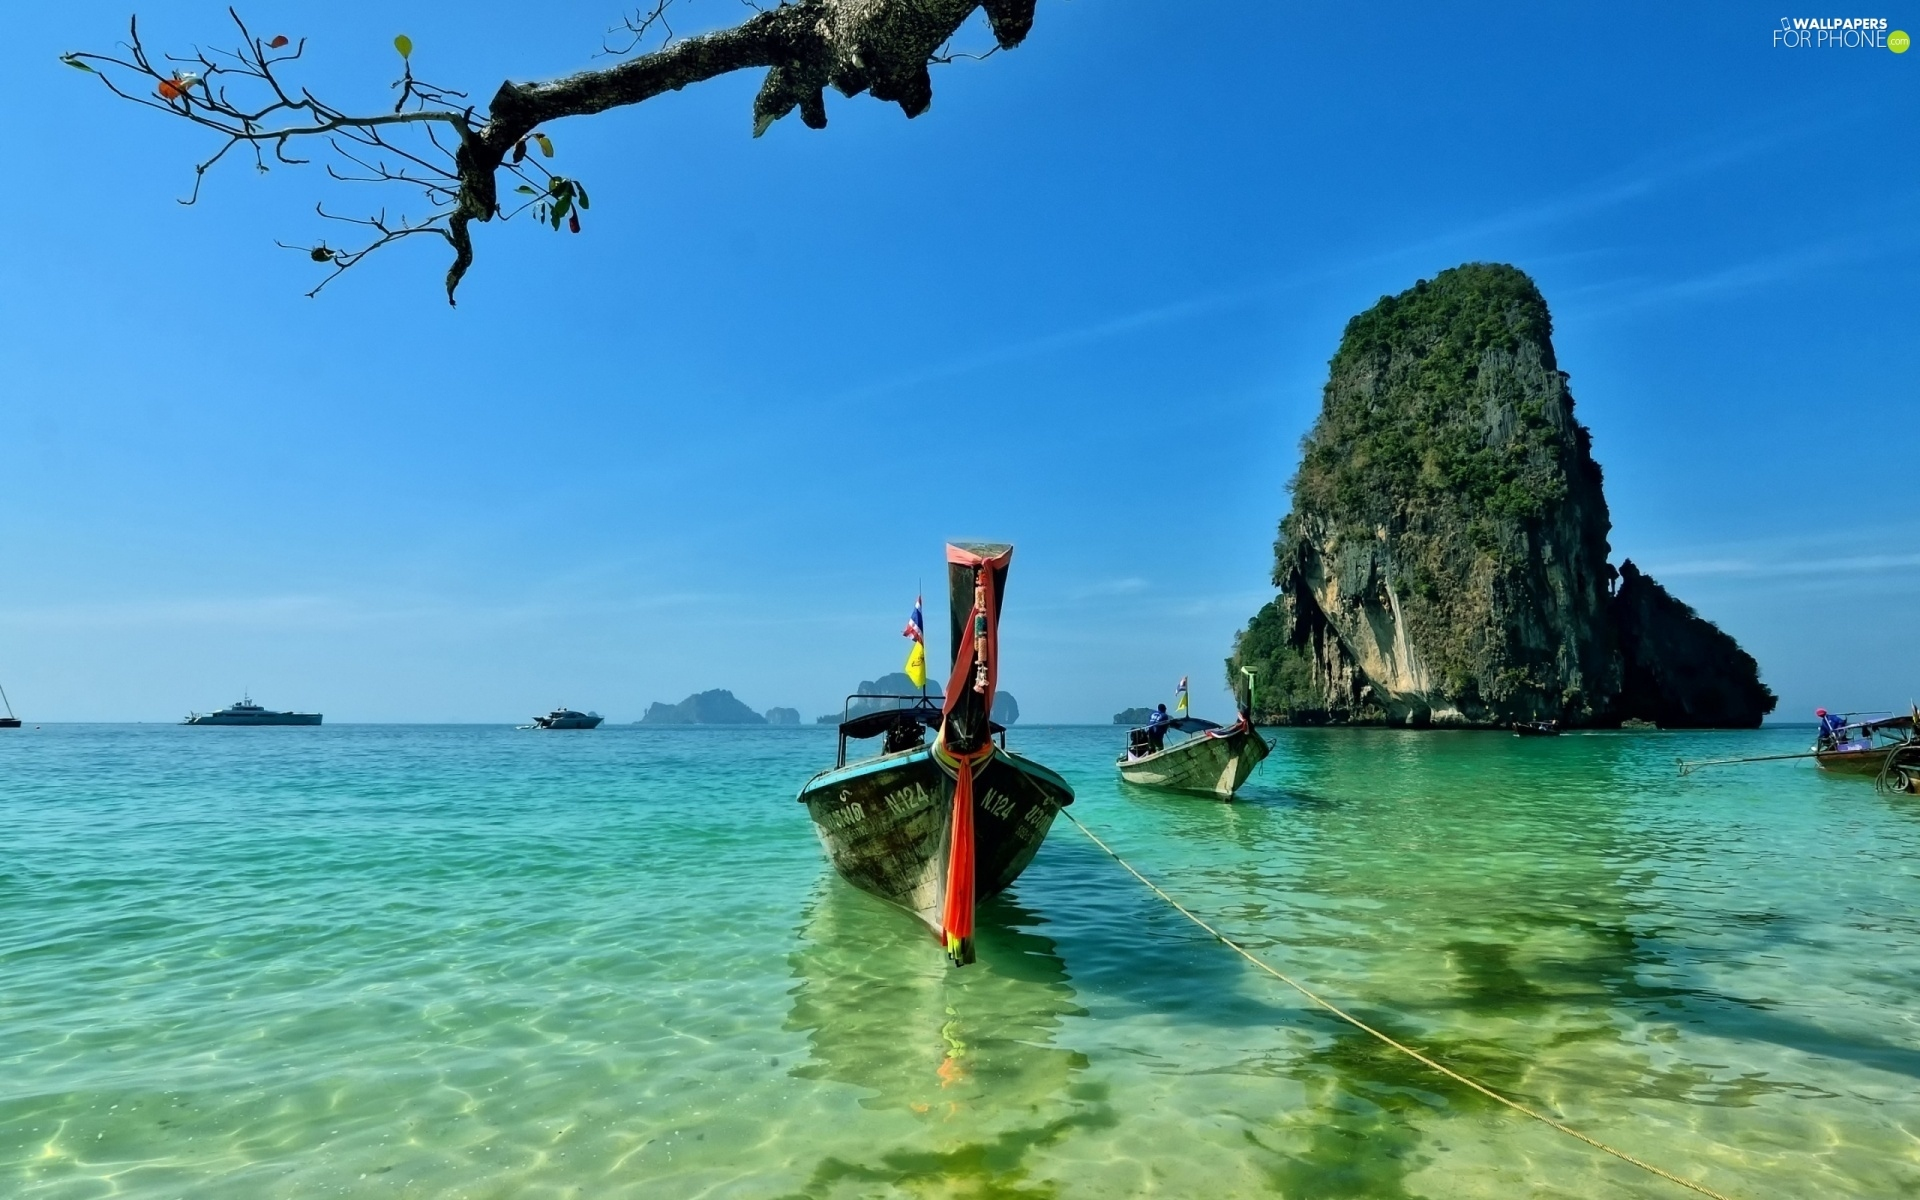 Thailand Reilly Boats Rocks Peninsula Beaches Sea For Phone